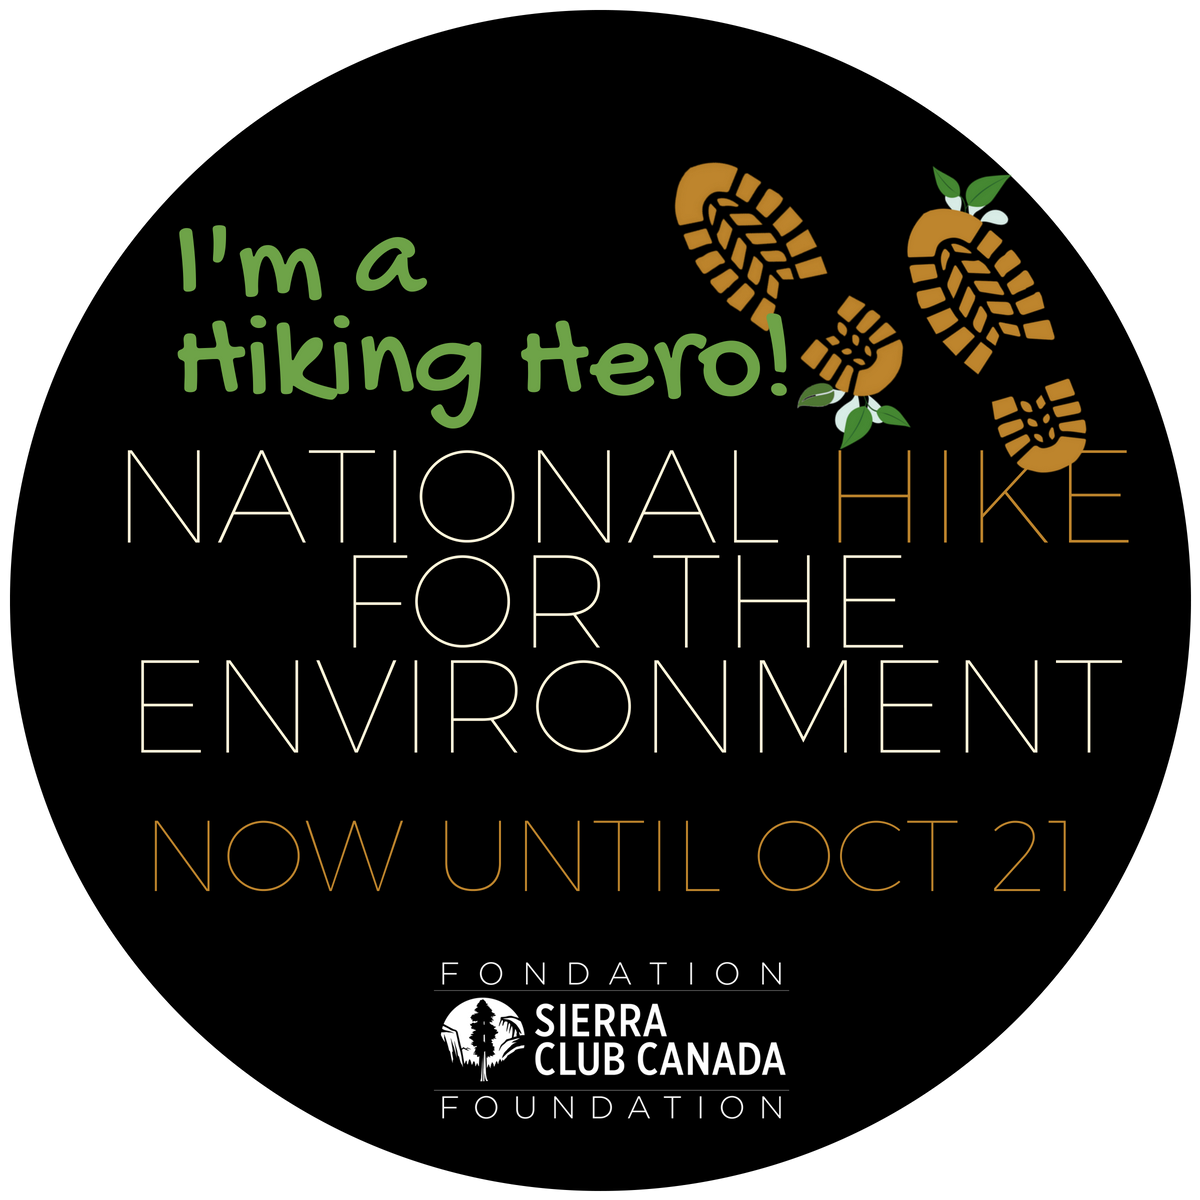 National Hike for the Environment